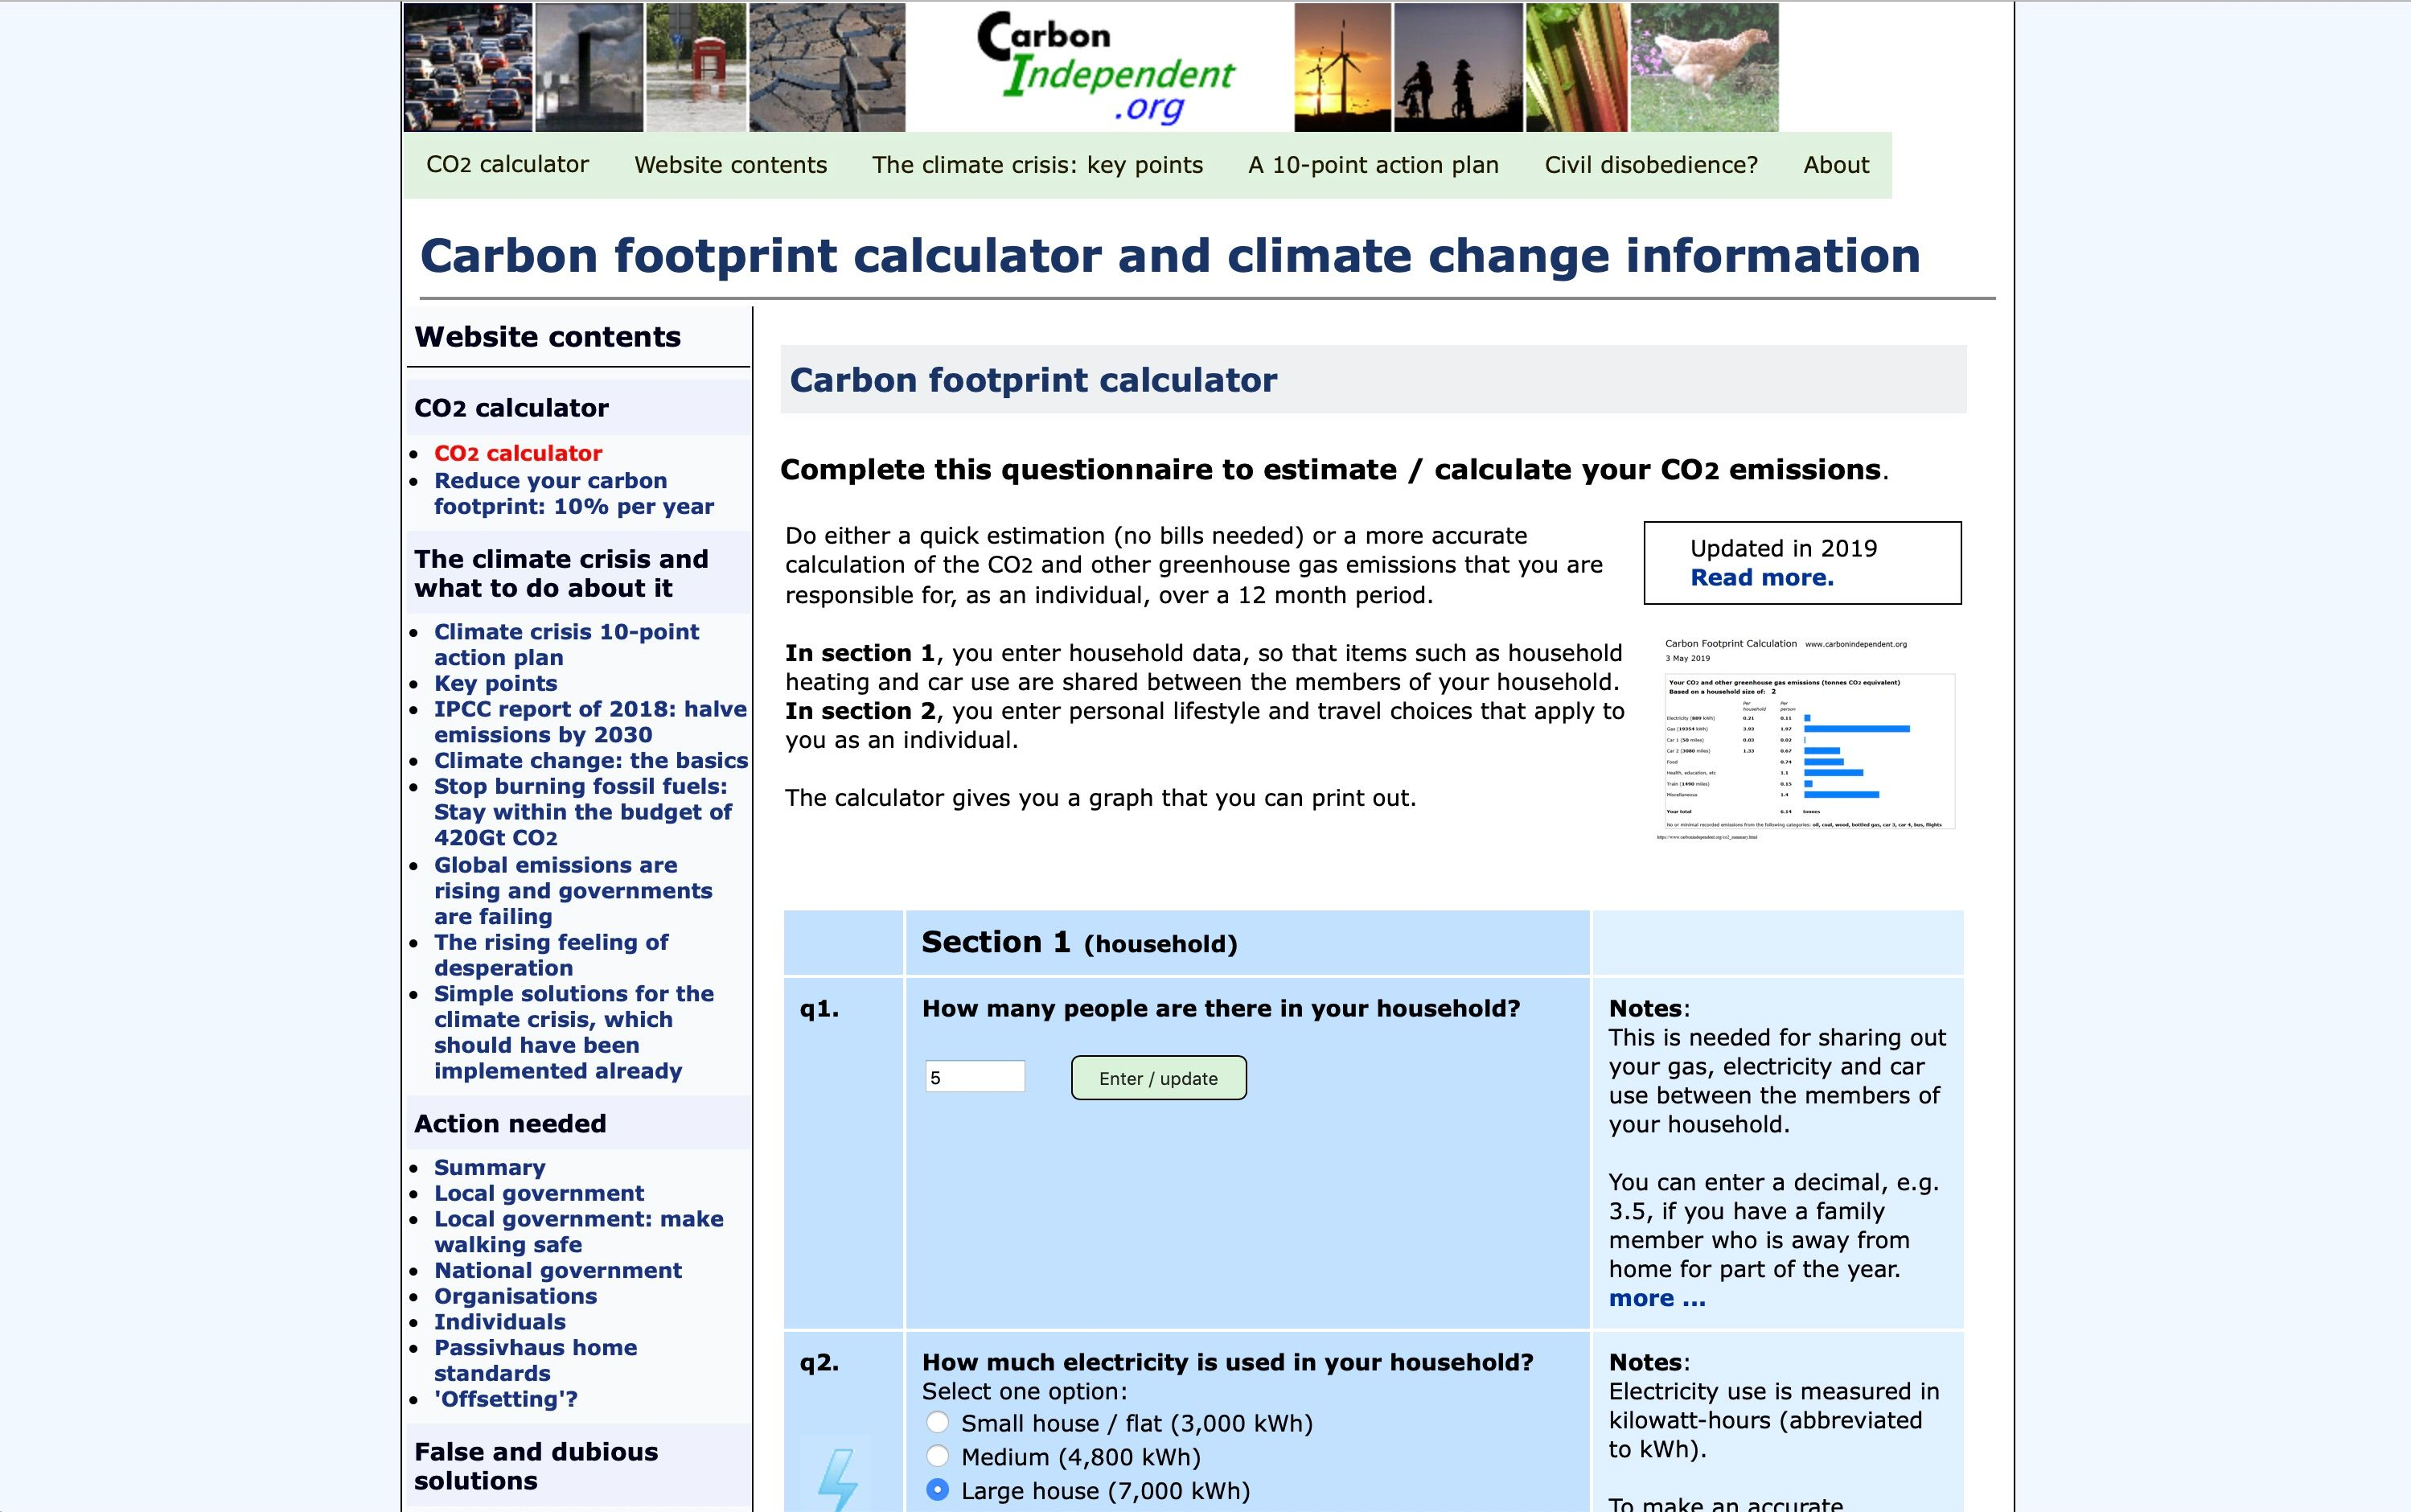 Carbon Independent calculator FB